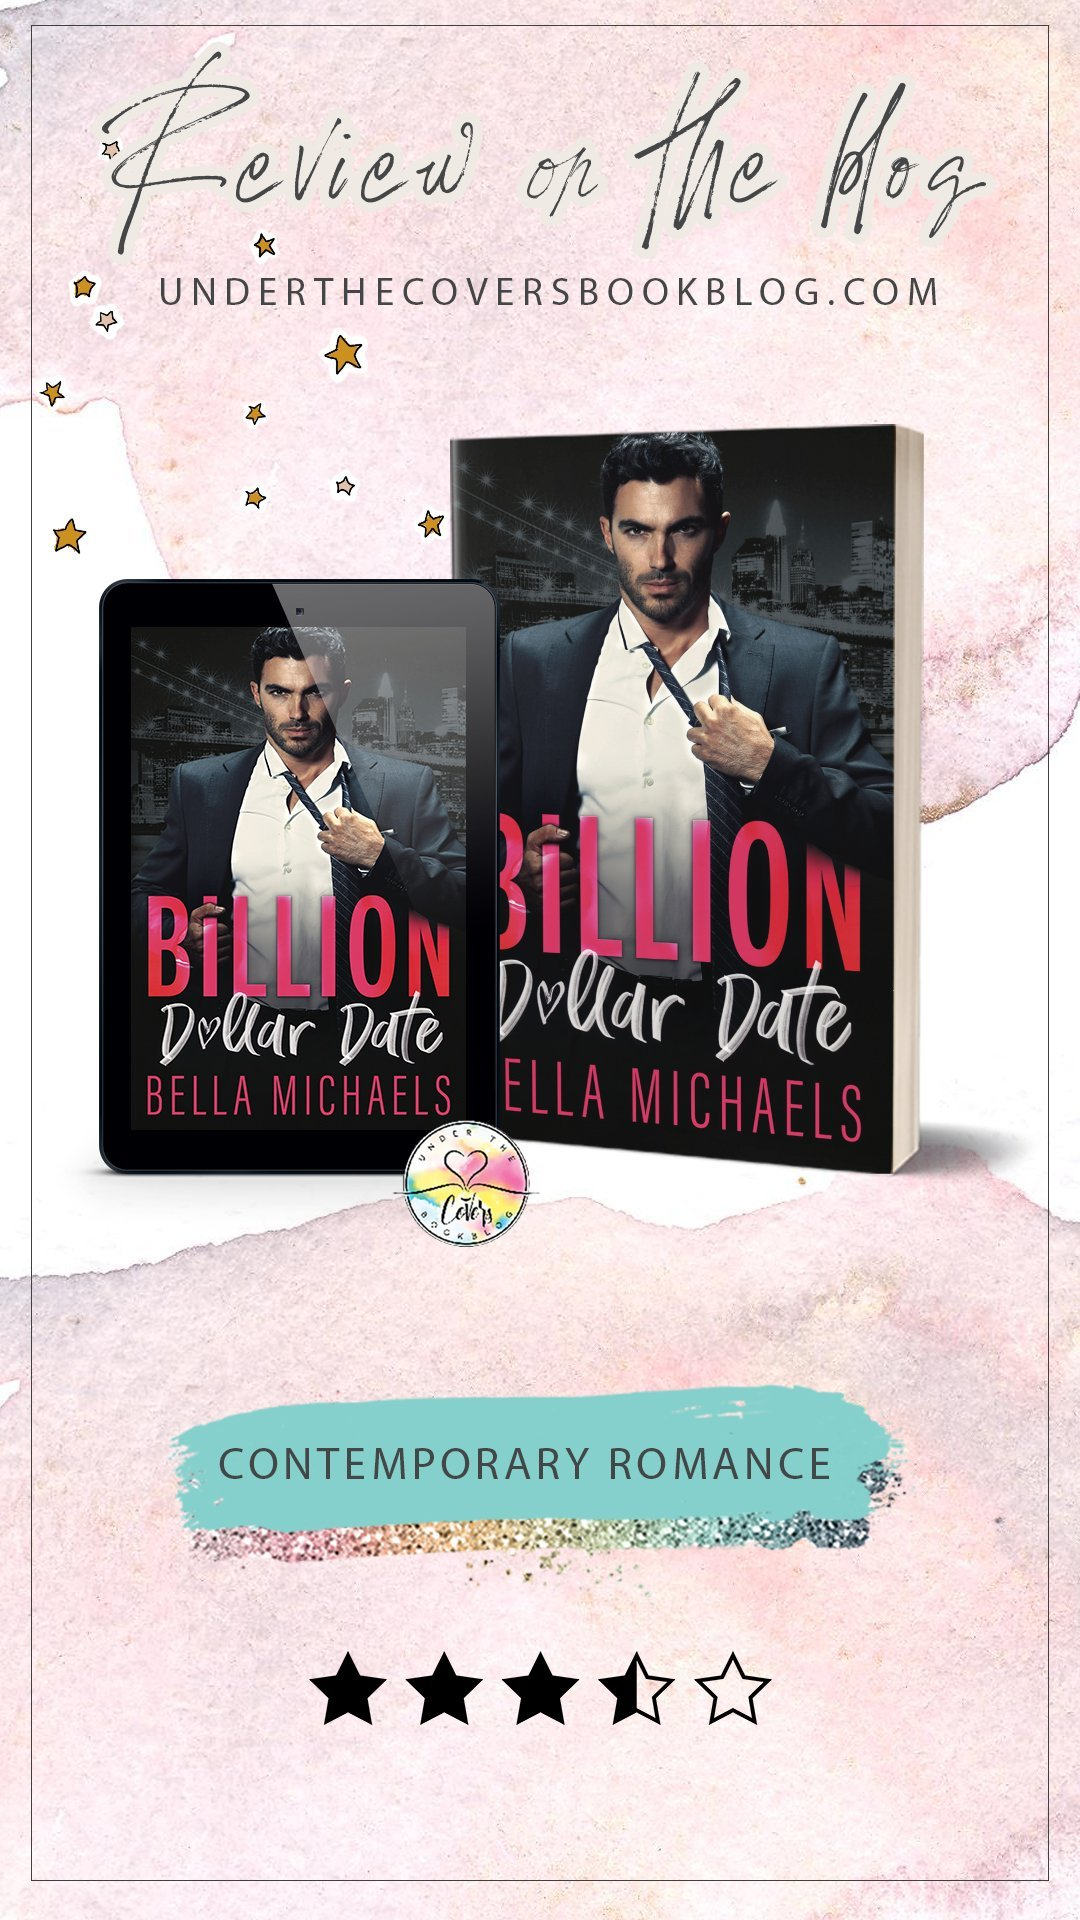 ARC Review: Billion Dollar Date by Bella Michaels